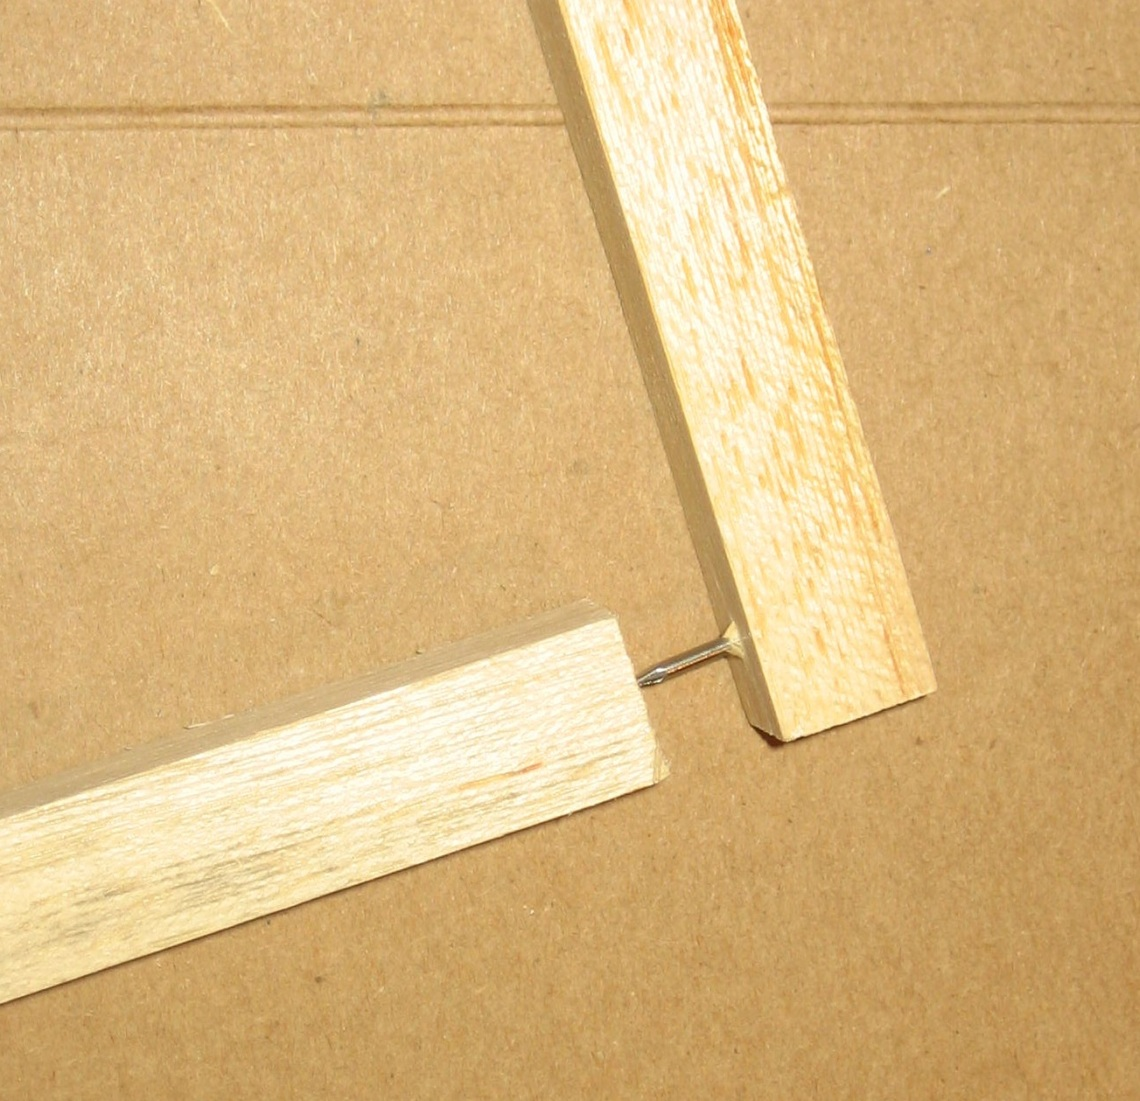 Image Result For How To Attach Two Pieces Of Wood Side By Side